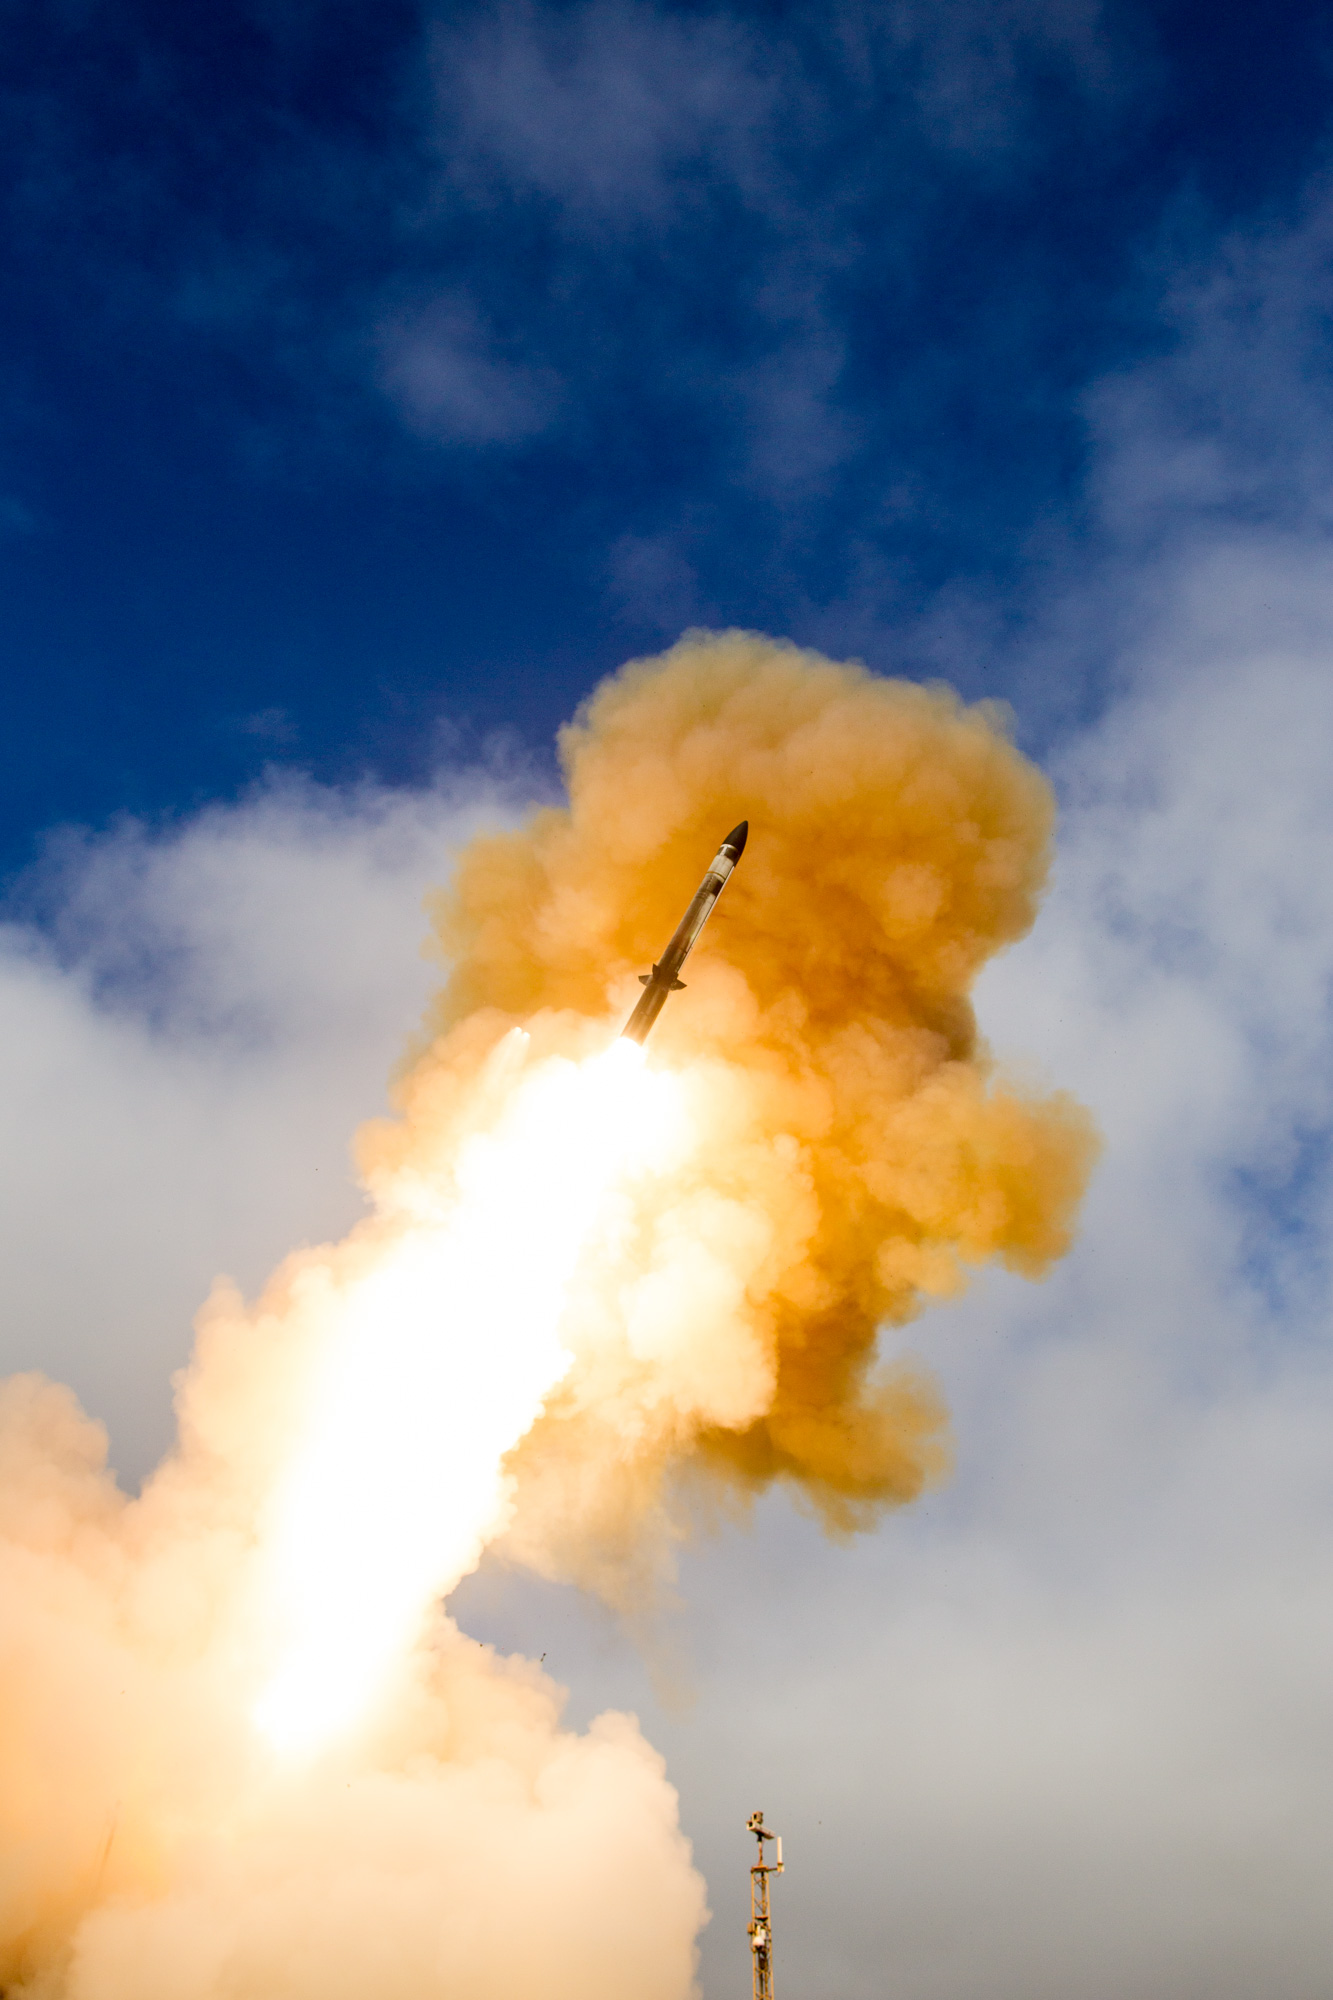 The Technical Research and Development Institute (TRDI), Japan Ministry of Defense (MOD), and the U.S. Missile Defense Agency (MDA), in cooperation with the U.S. Navy, announced the successful completion of a Standard Missile-3 (SM-3) Block IIA flight test from the Point Mugu Sea Range, San Nicolas Island, California. This test, designated SM-3 Block IIA Cooperative Development Controlled Test Vehicle-01, was the first live fire of the SM-3 Block IIA. Missile Defense Agency photo.